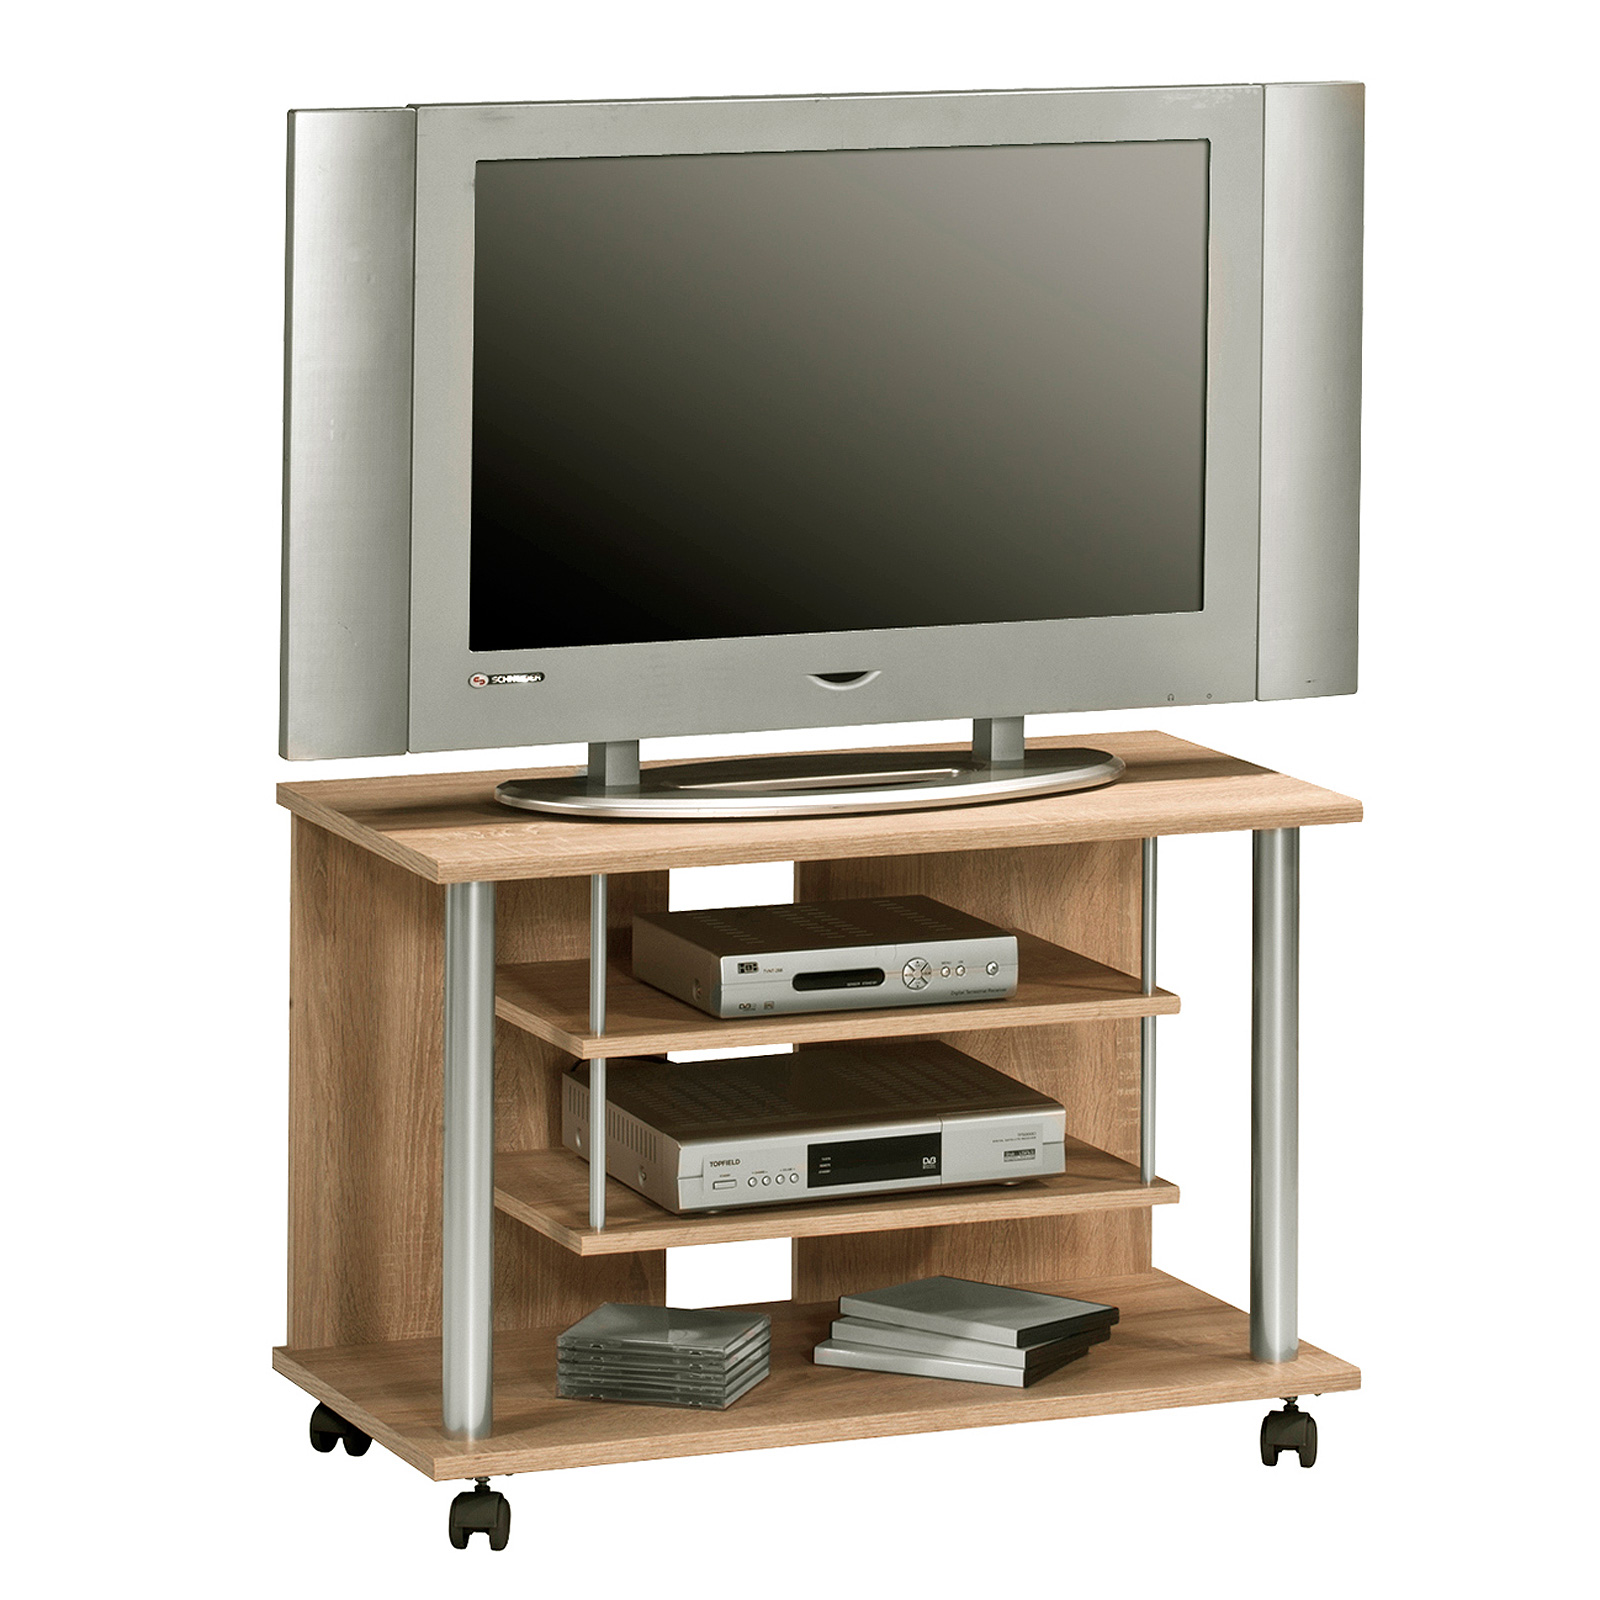 tvrack maja 1898 tvboard tvschrank mediam bel als. Black Bedroom Furniture Sets. Home Design Ideas